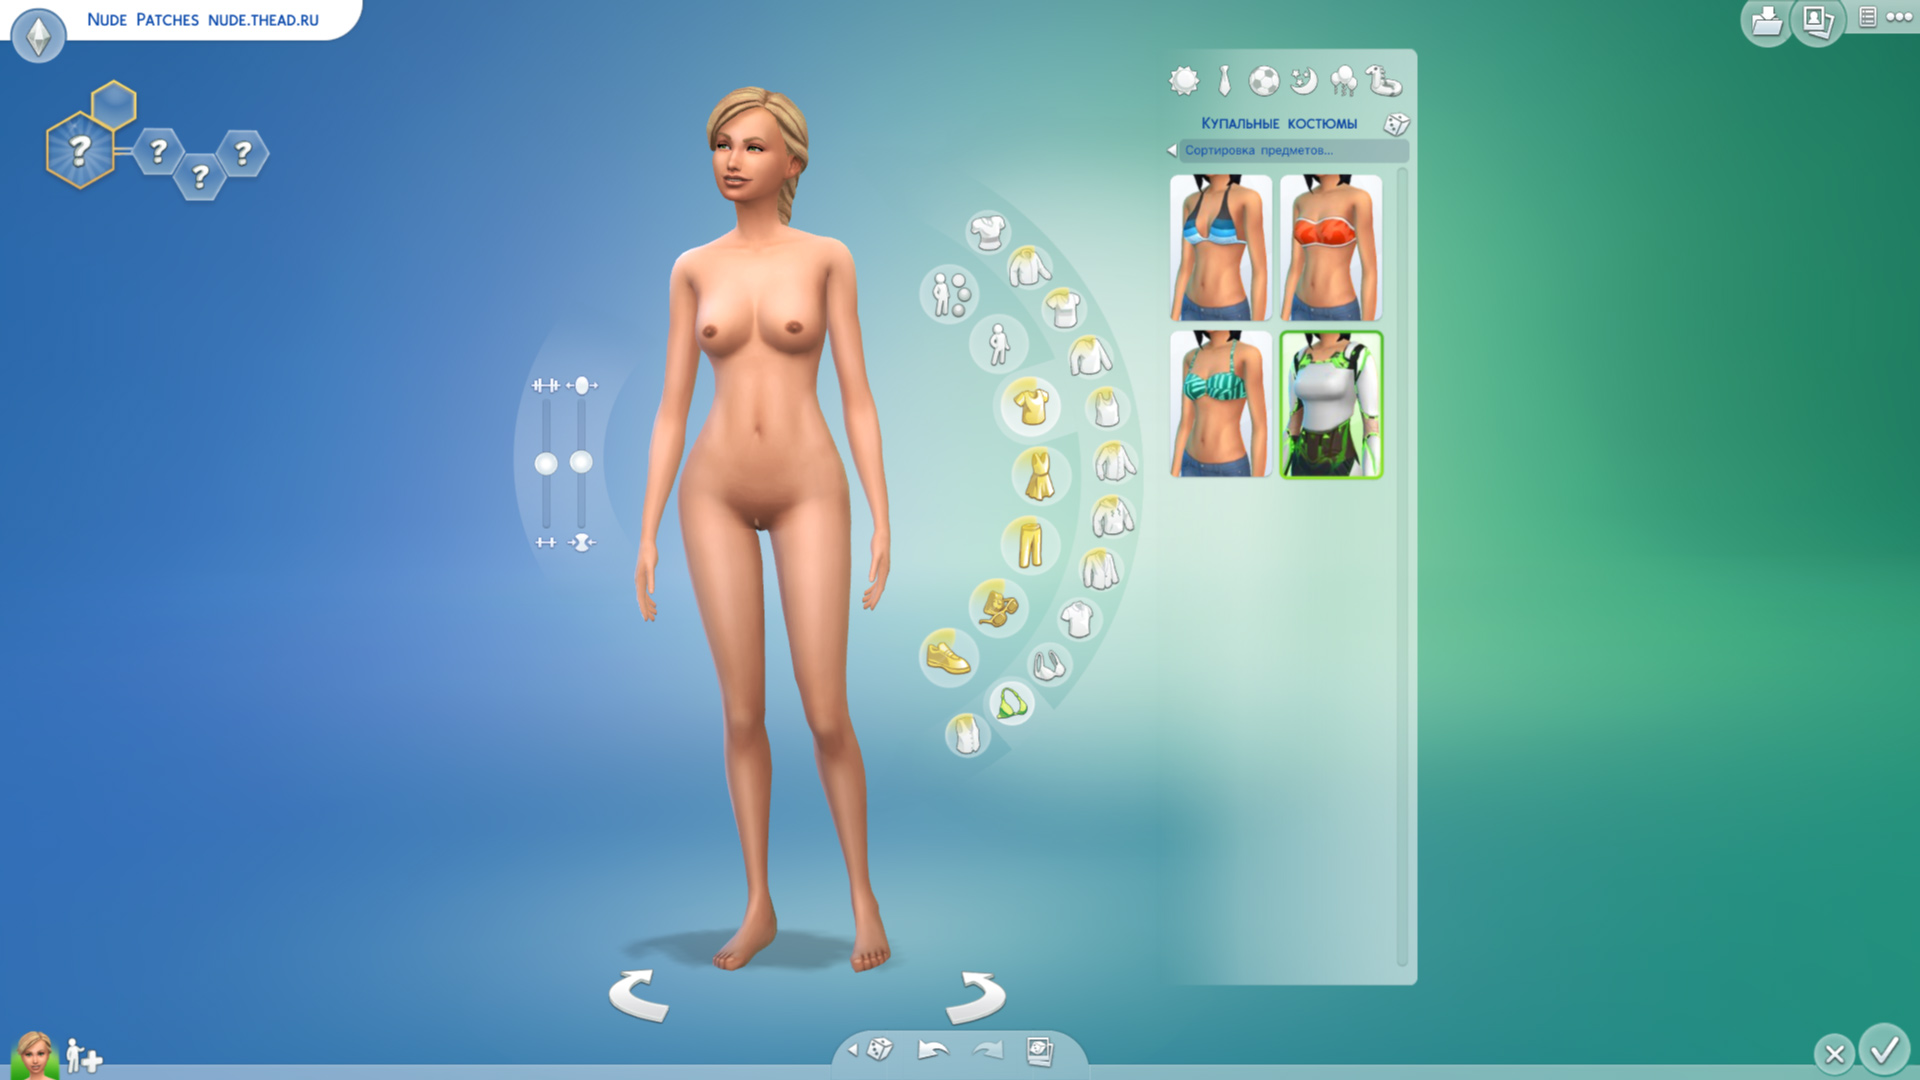 Nude patch for sims porn gallery